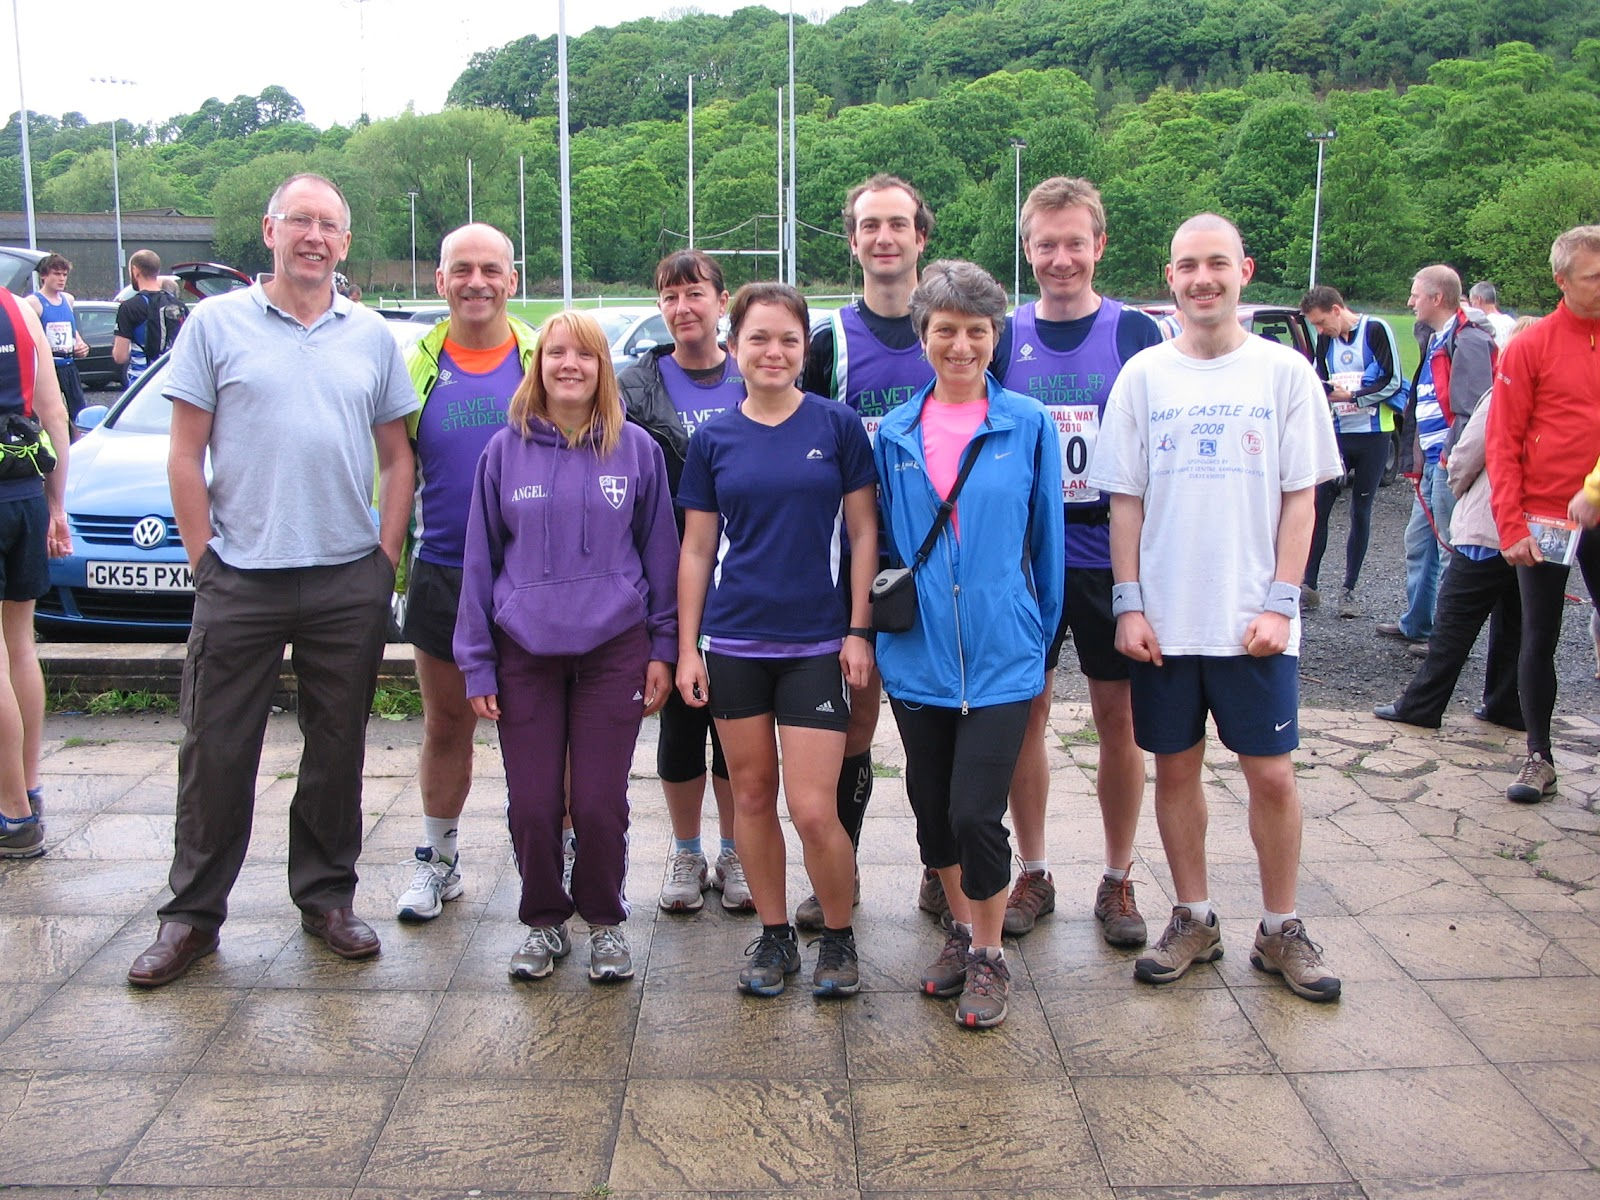 Calderdale Way Relay 2011